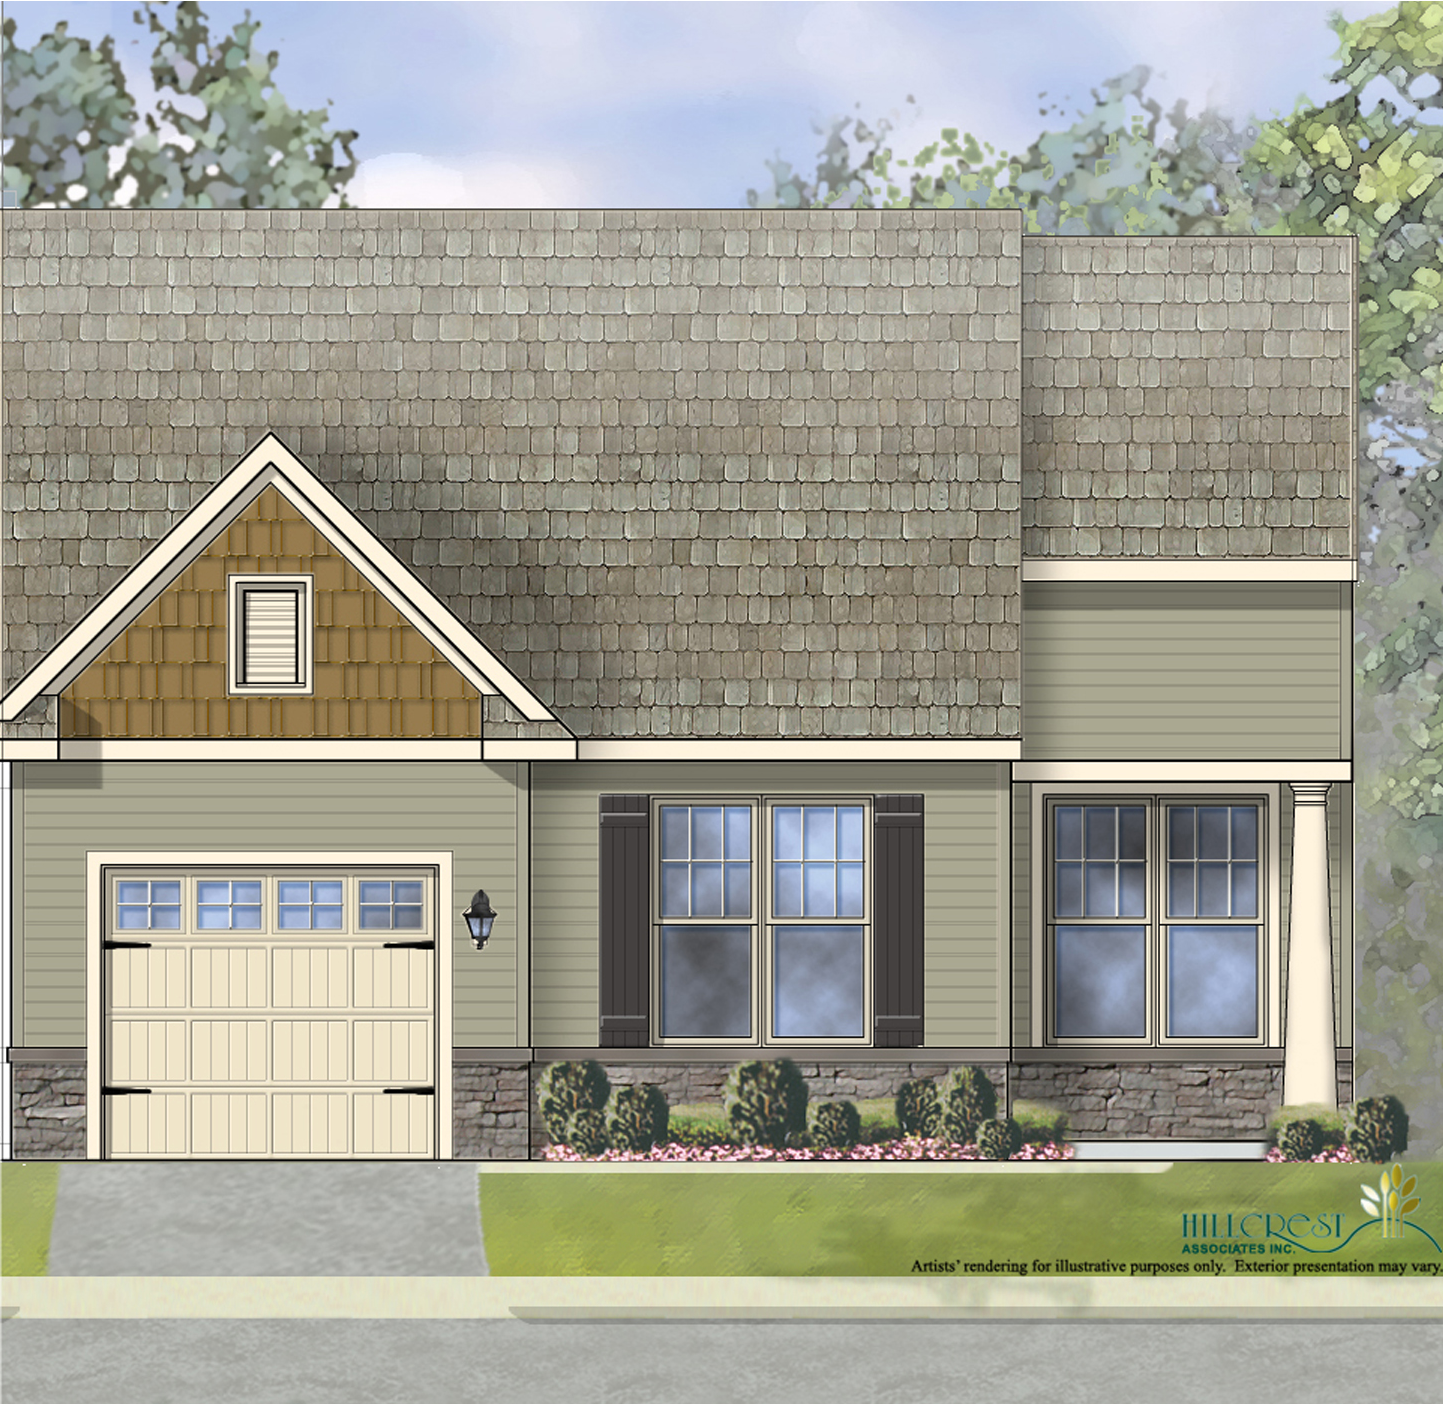 The Chatsworth Manor End Unit Home with low maintenance vinyl siding andstone wainscoting